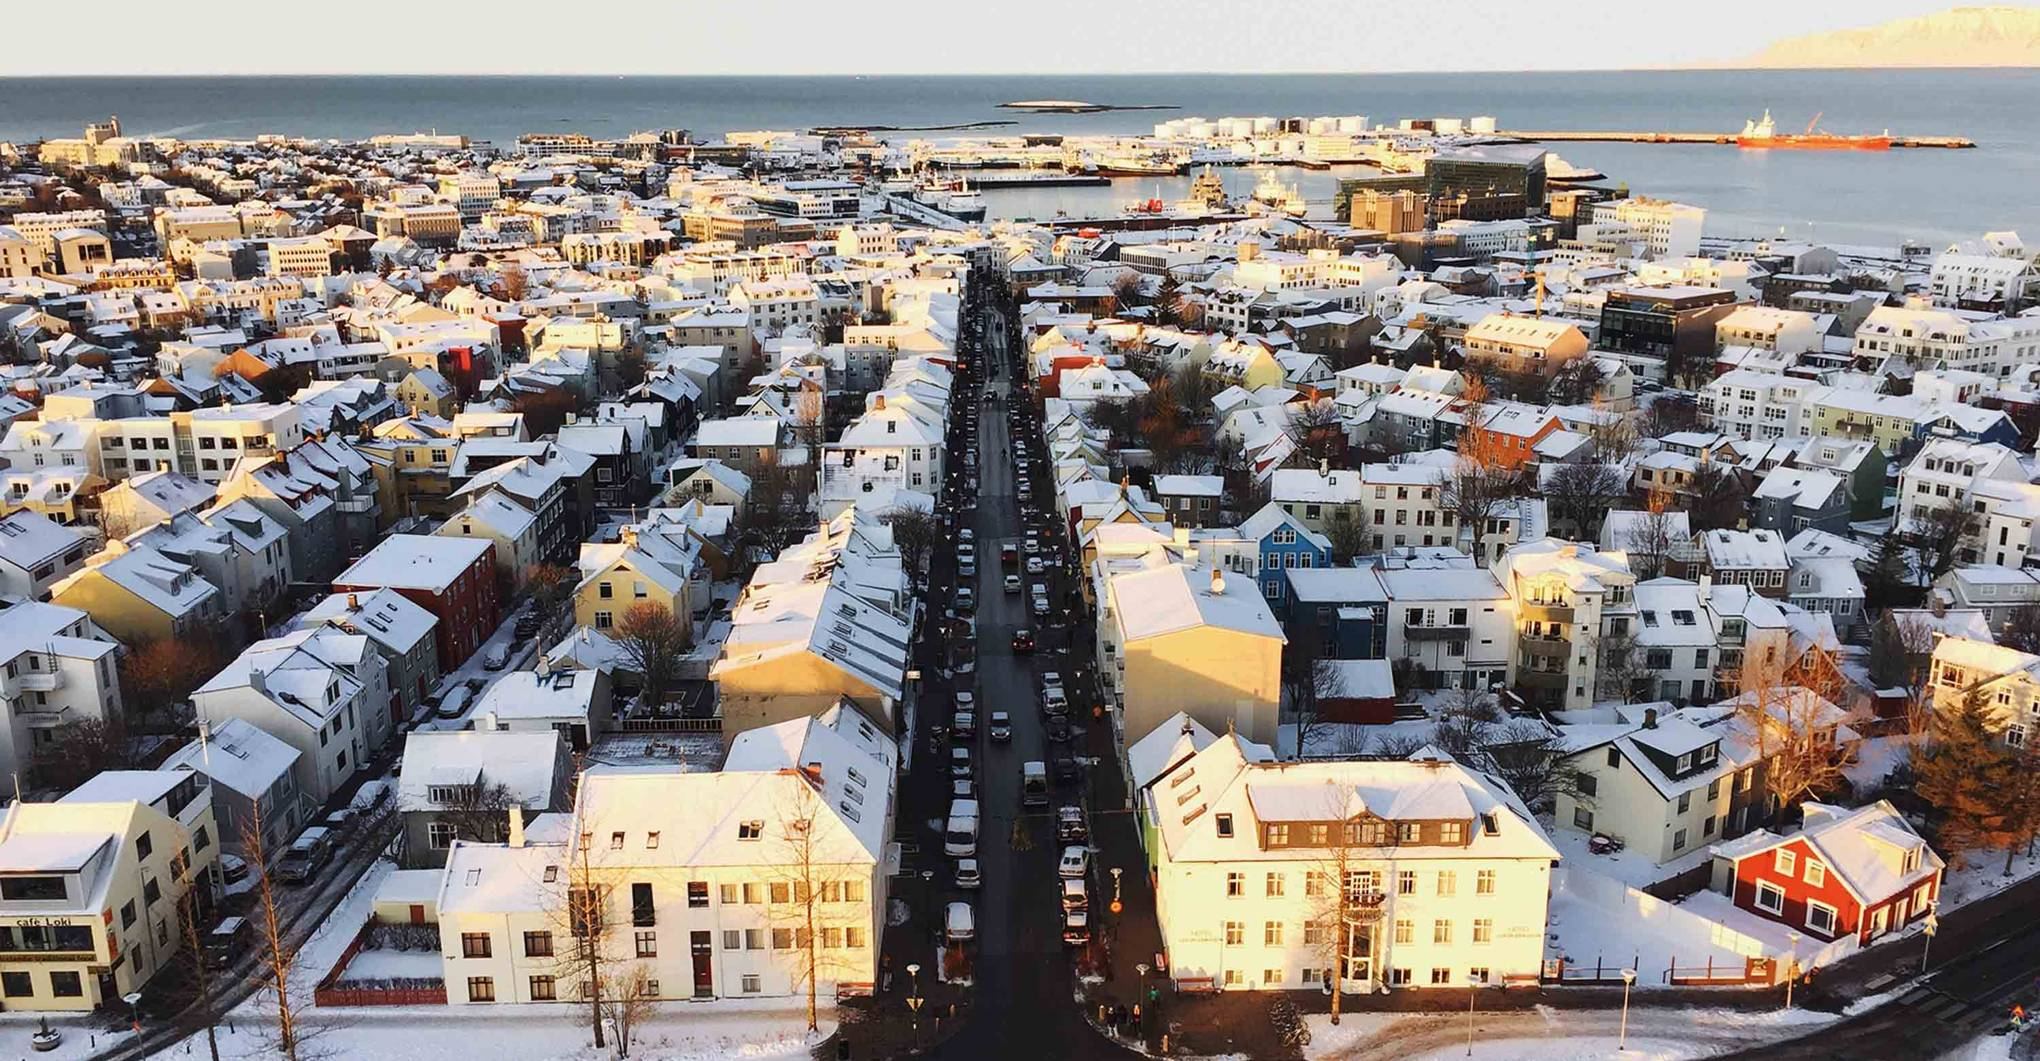 The best shops in Reykjavik